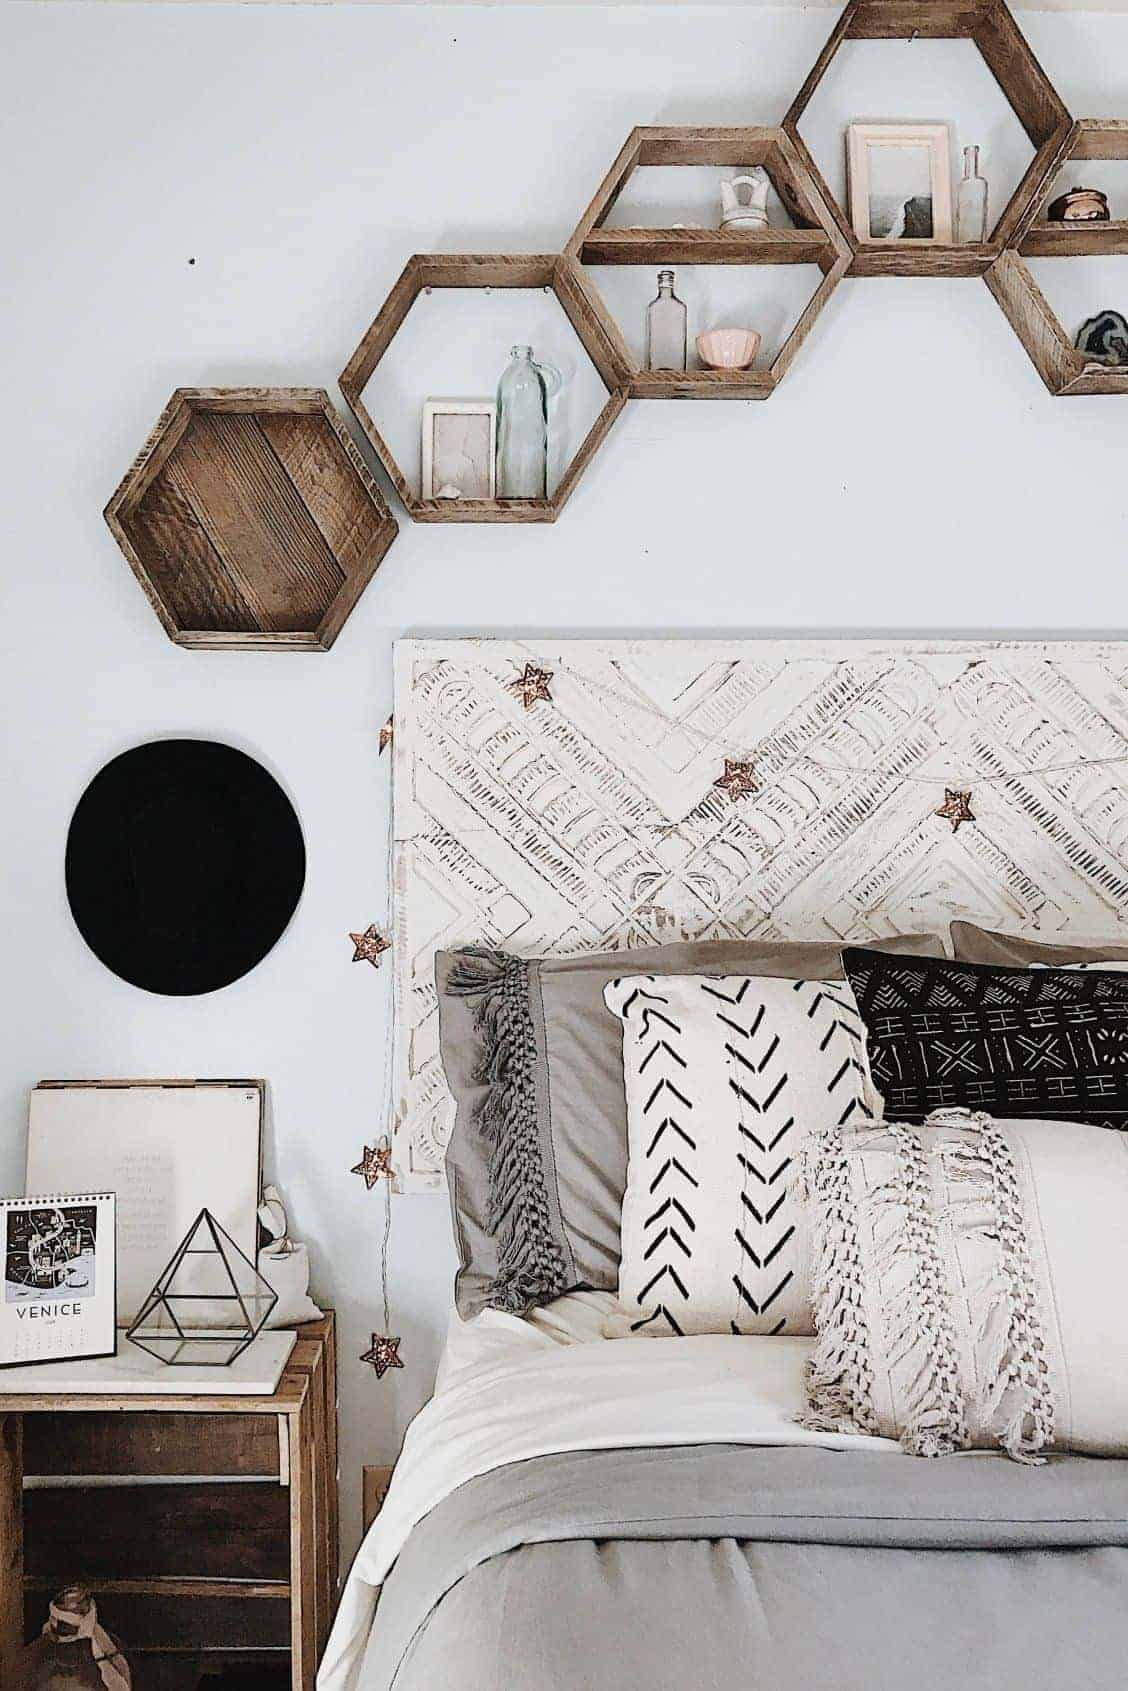 A bohemian bedroom with patterned pillow cases and a bedframe along with hexagonal floating wooden shelves hung above the bed.